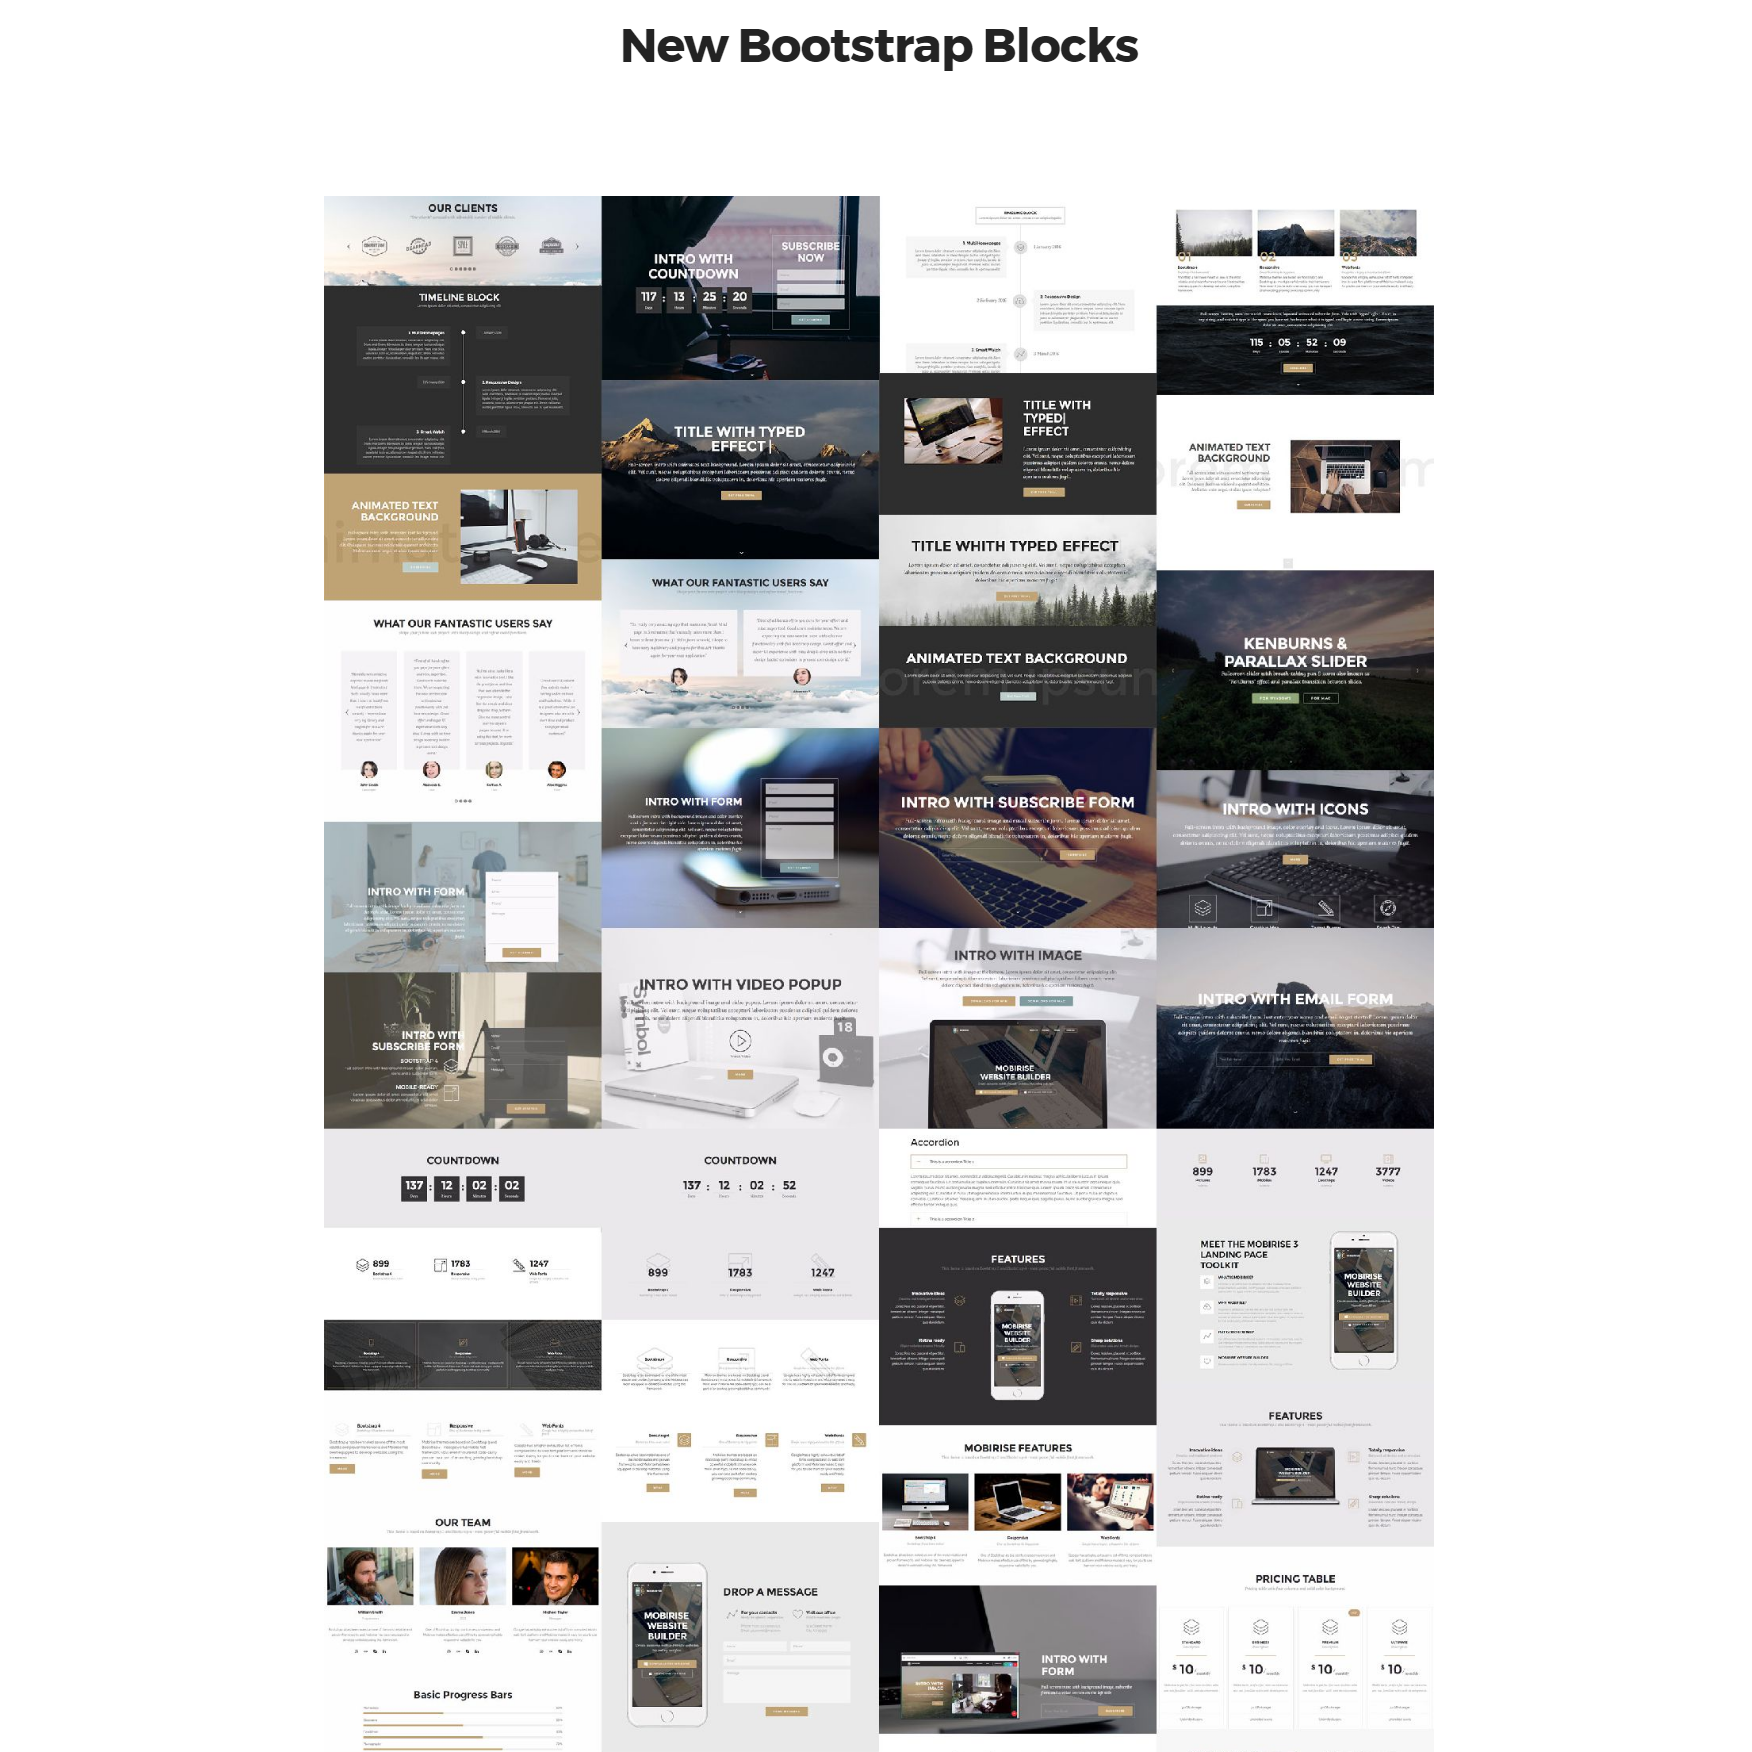 Free Download Bootstrap 4 mobile-friendly blocks Templates